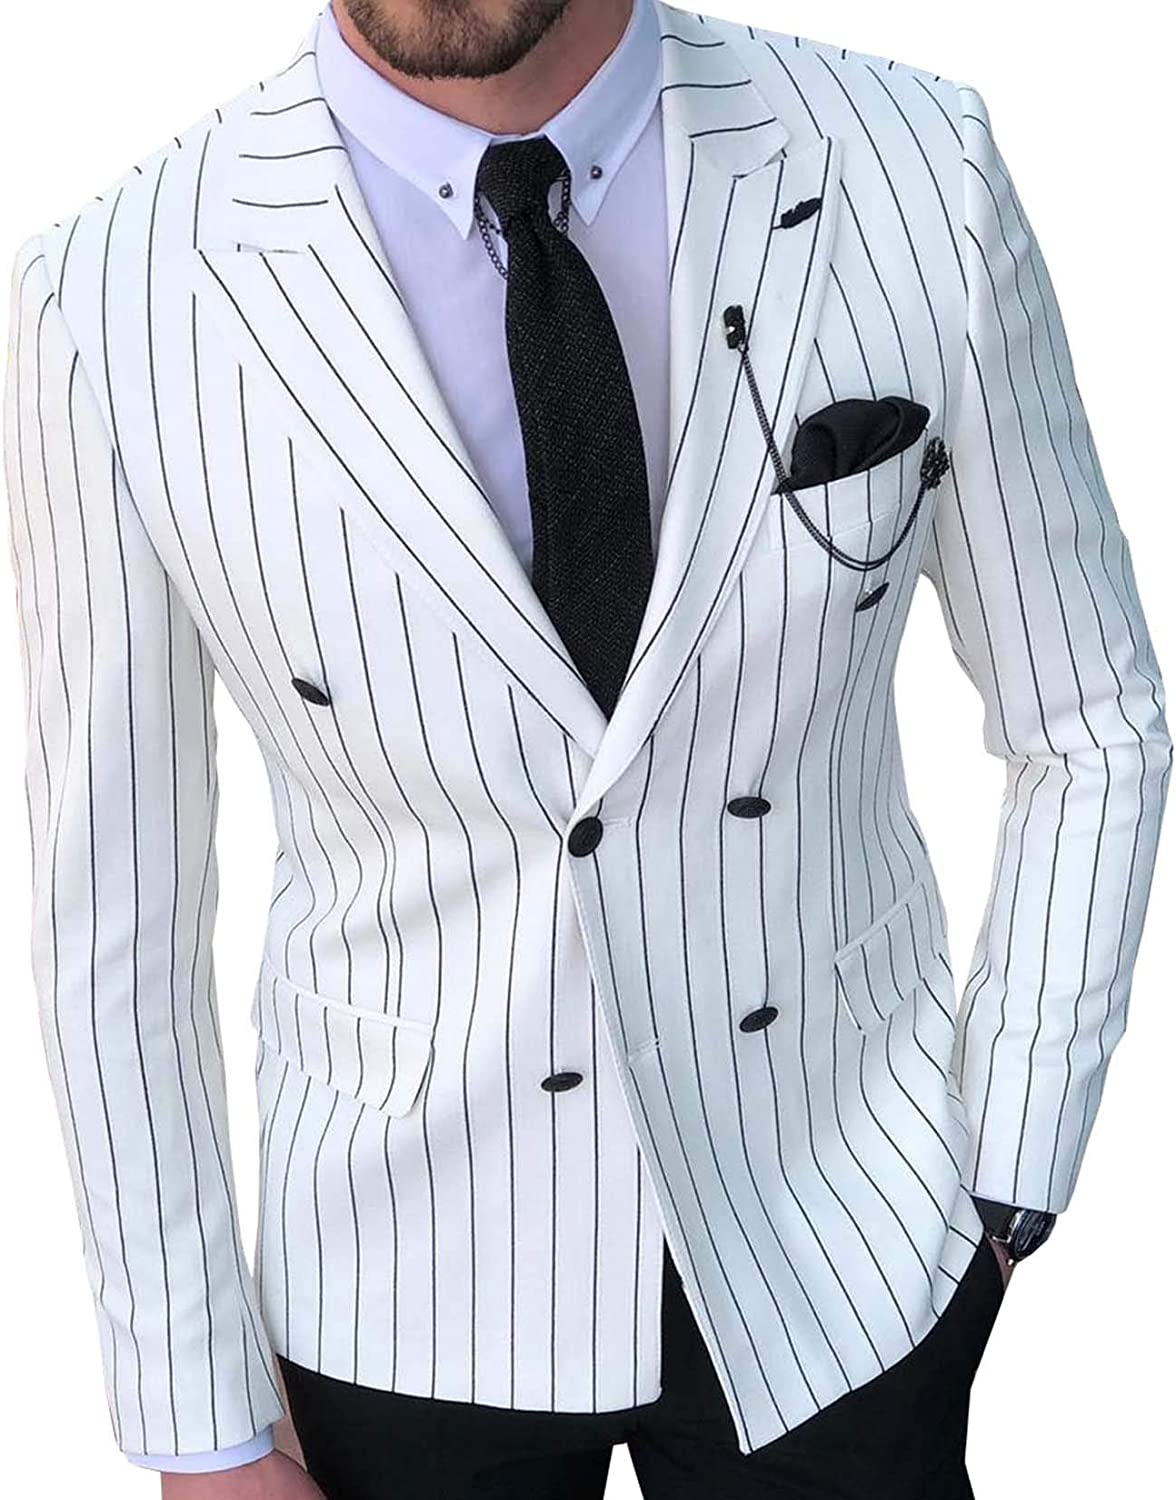 1 One Piece Mens Suit Jacket Fashion Peak Lapel Double Breasted Stripes Business Blazer for Wedding